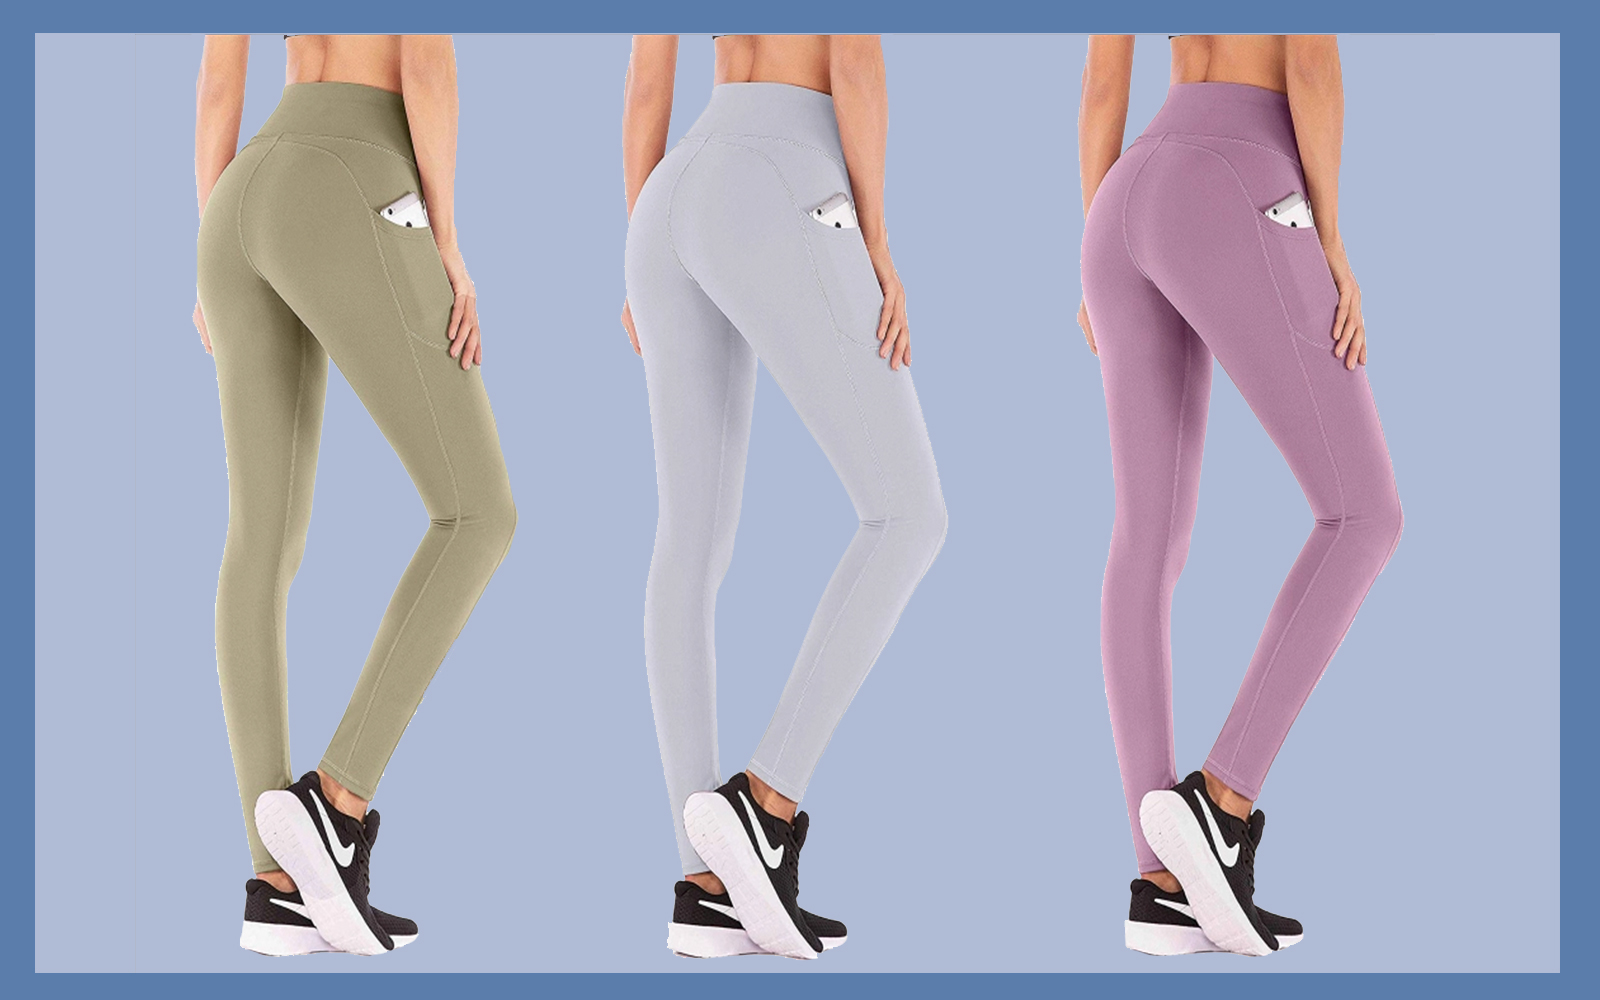 IUGA High-Waist Yoga Leggings